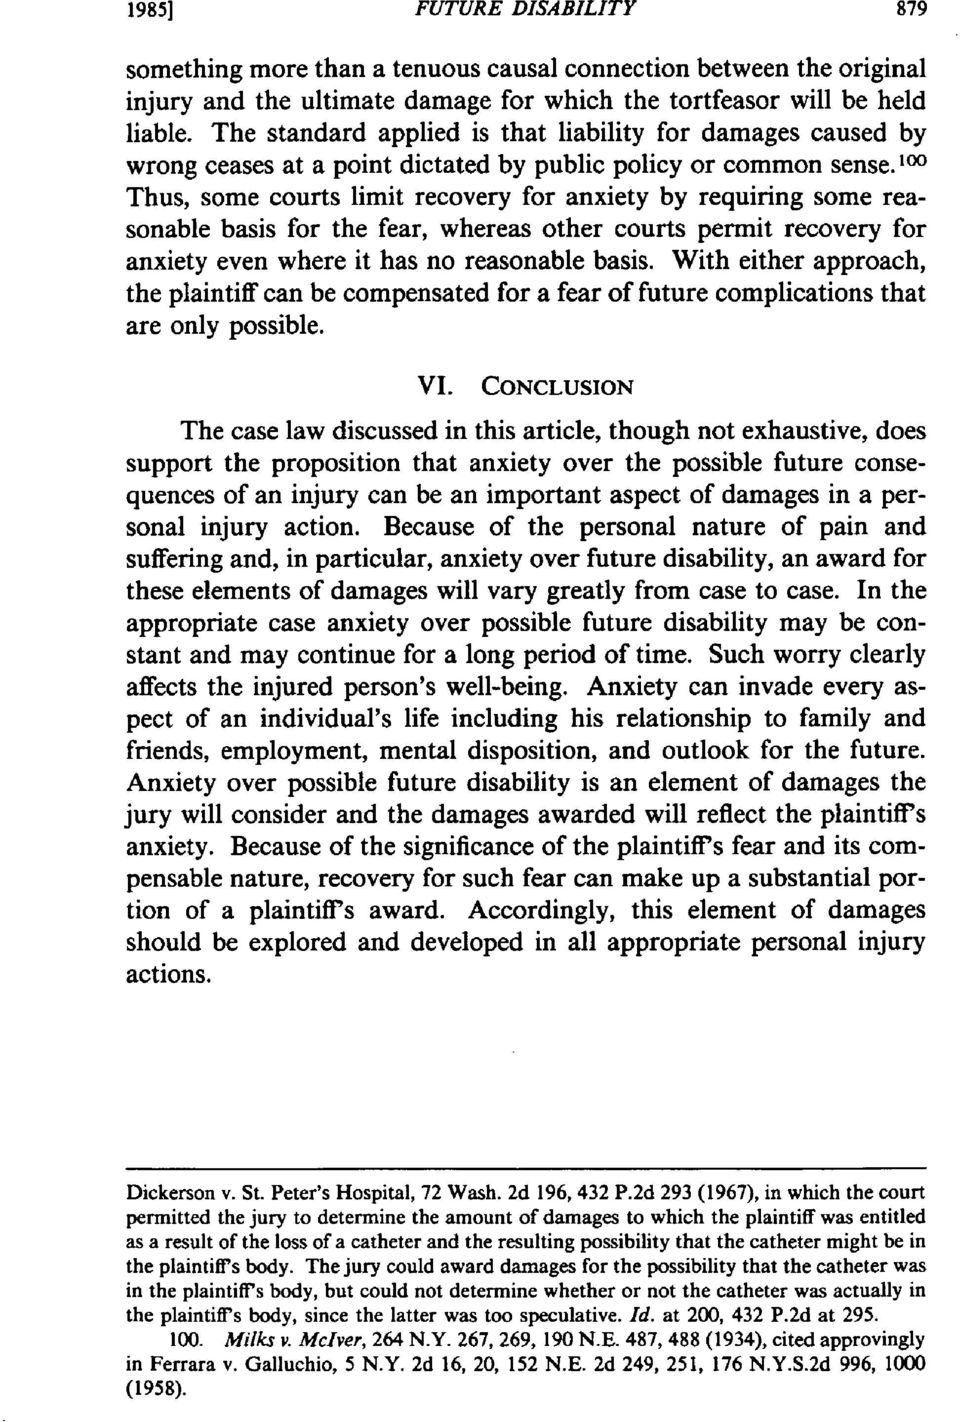 100 Thus, some courts limit recovery for anxiety by requiring some reasonable basis for the fear, whereas other courts permit recovery for anxiety even where it has no reasonable basis.